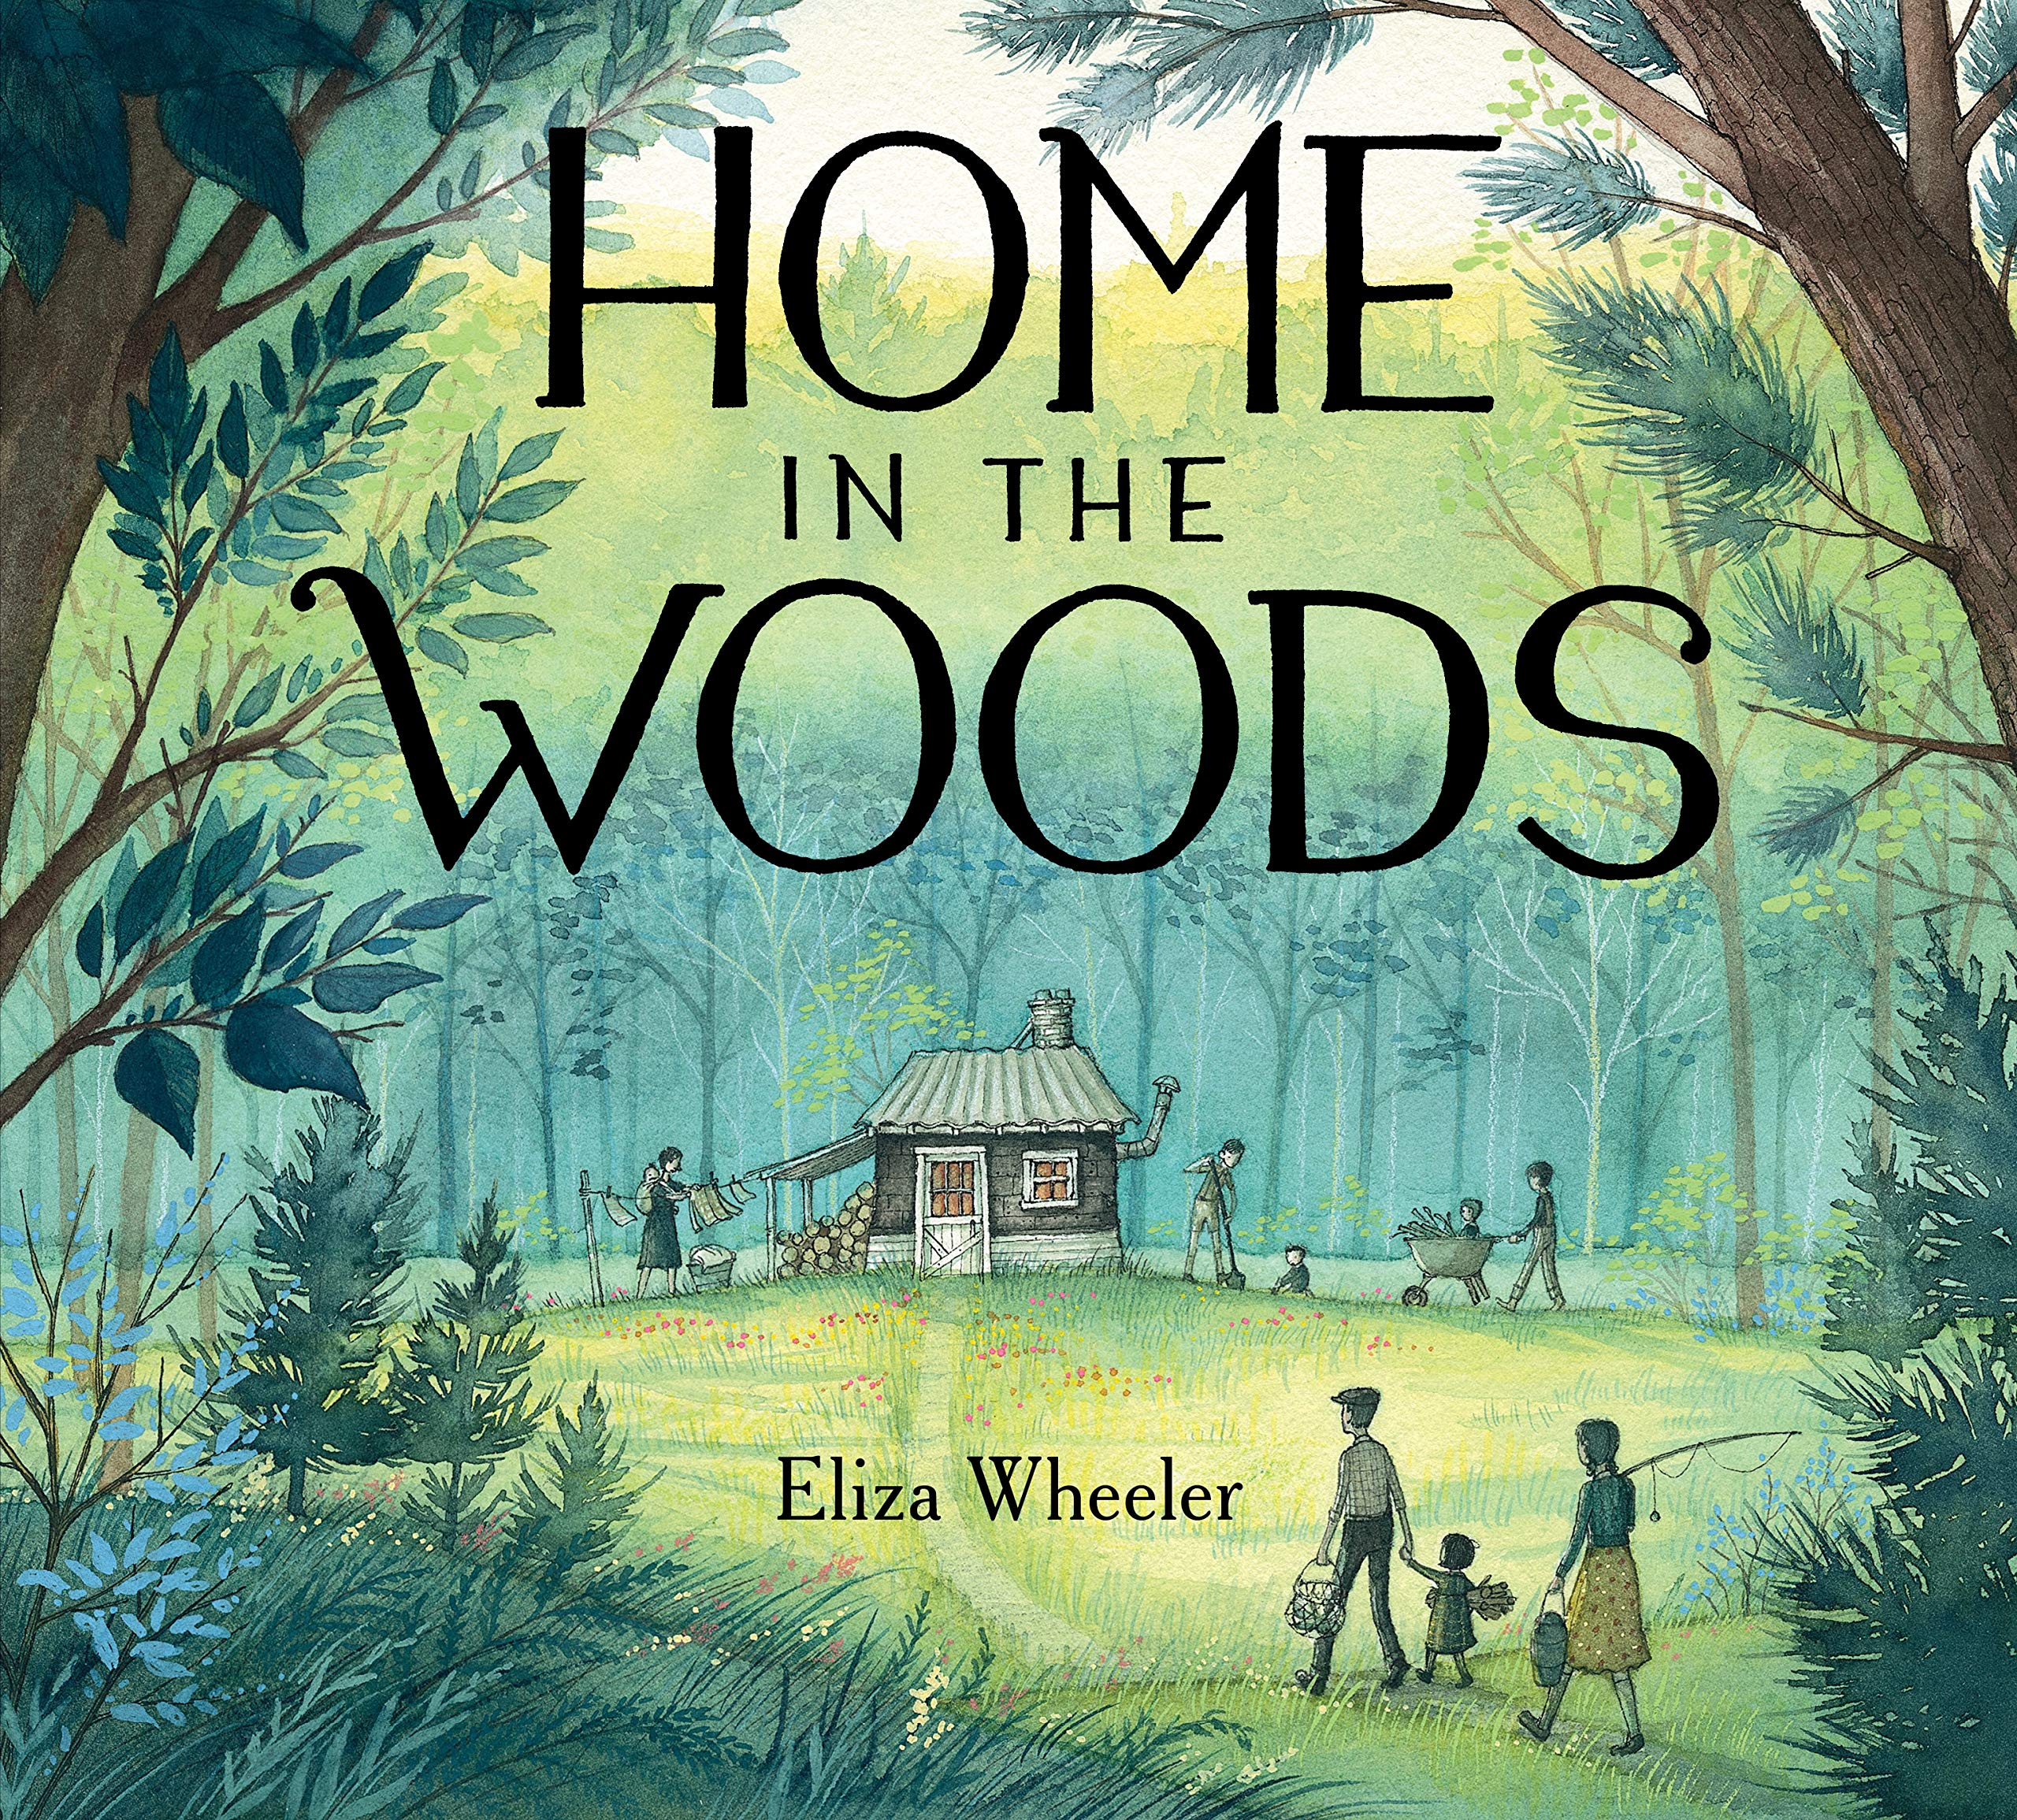 Image result for home in the woods eliza wheeler